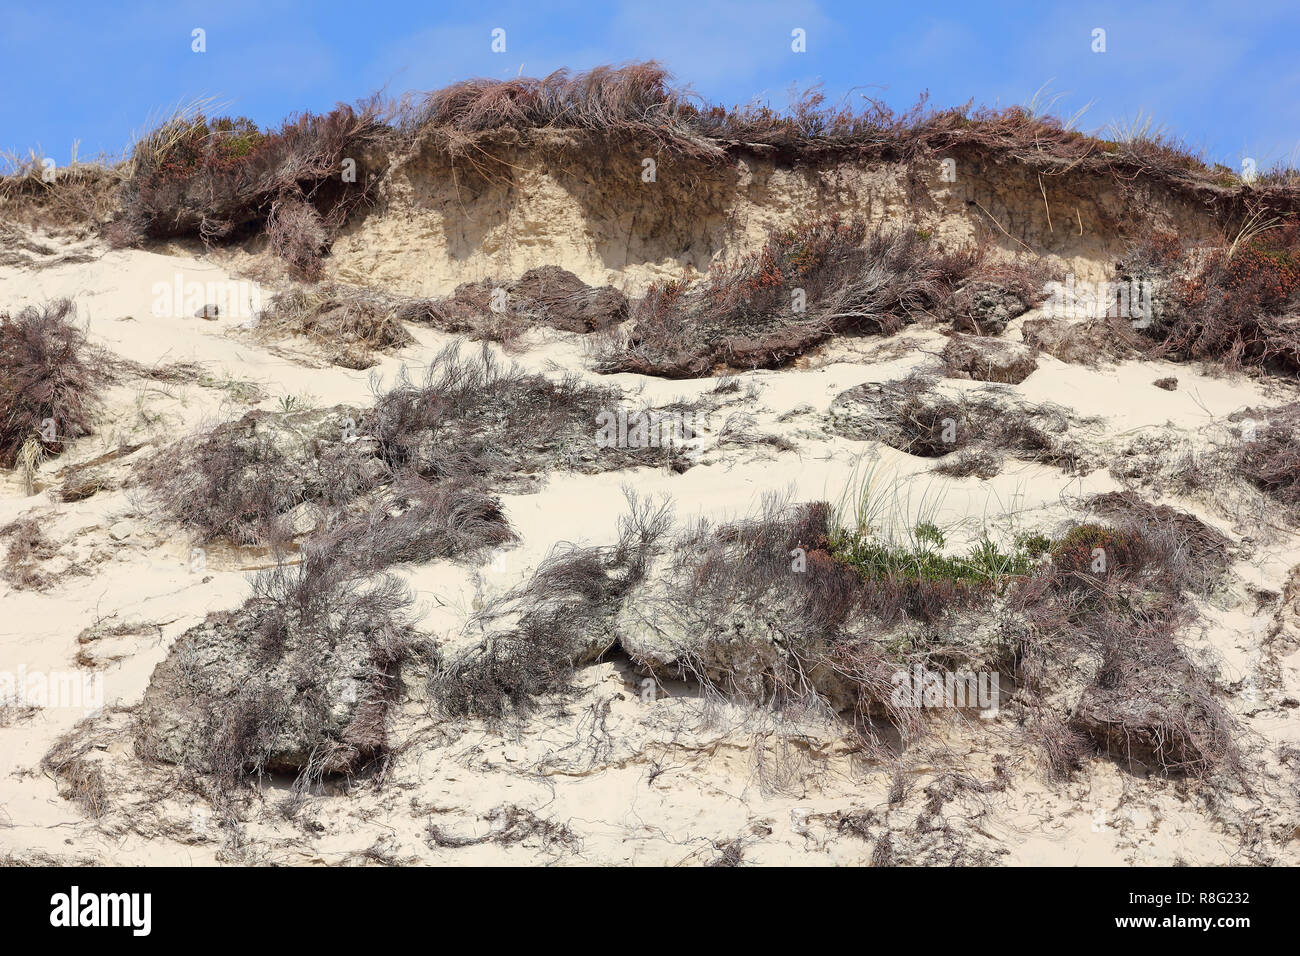 Break-line of a dune on the island of Sylt after a storm - Stock Image